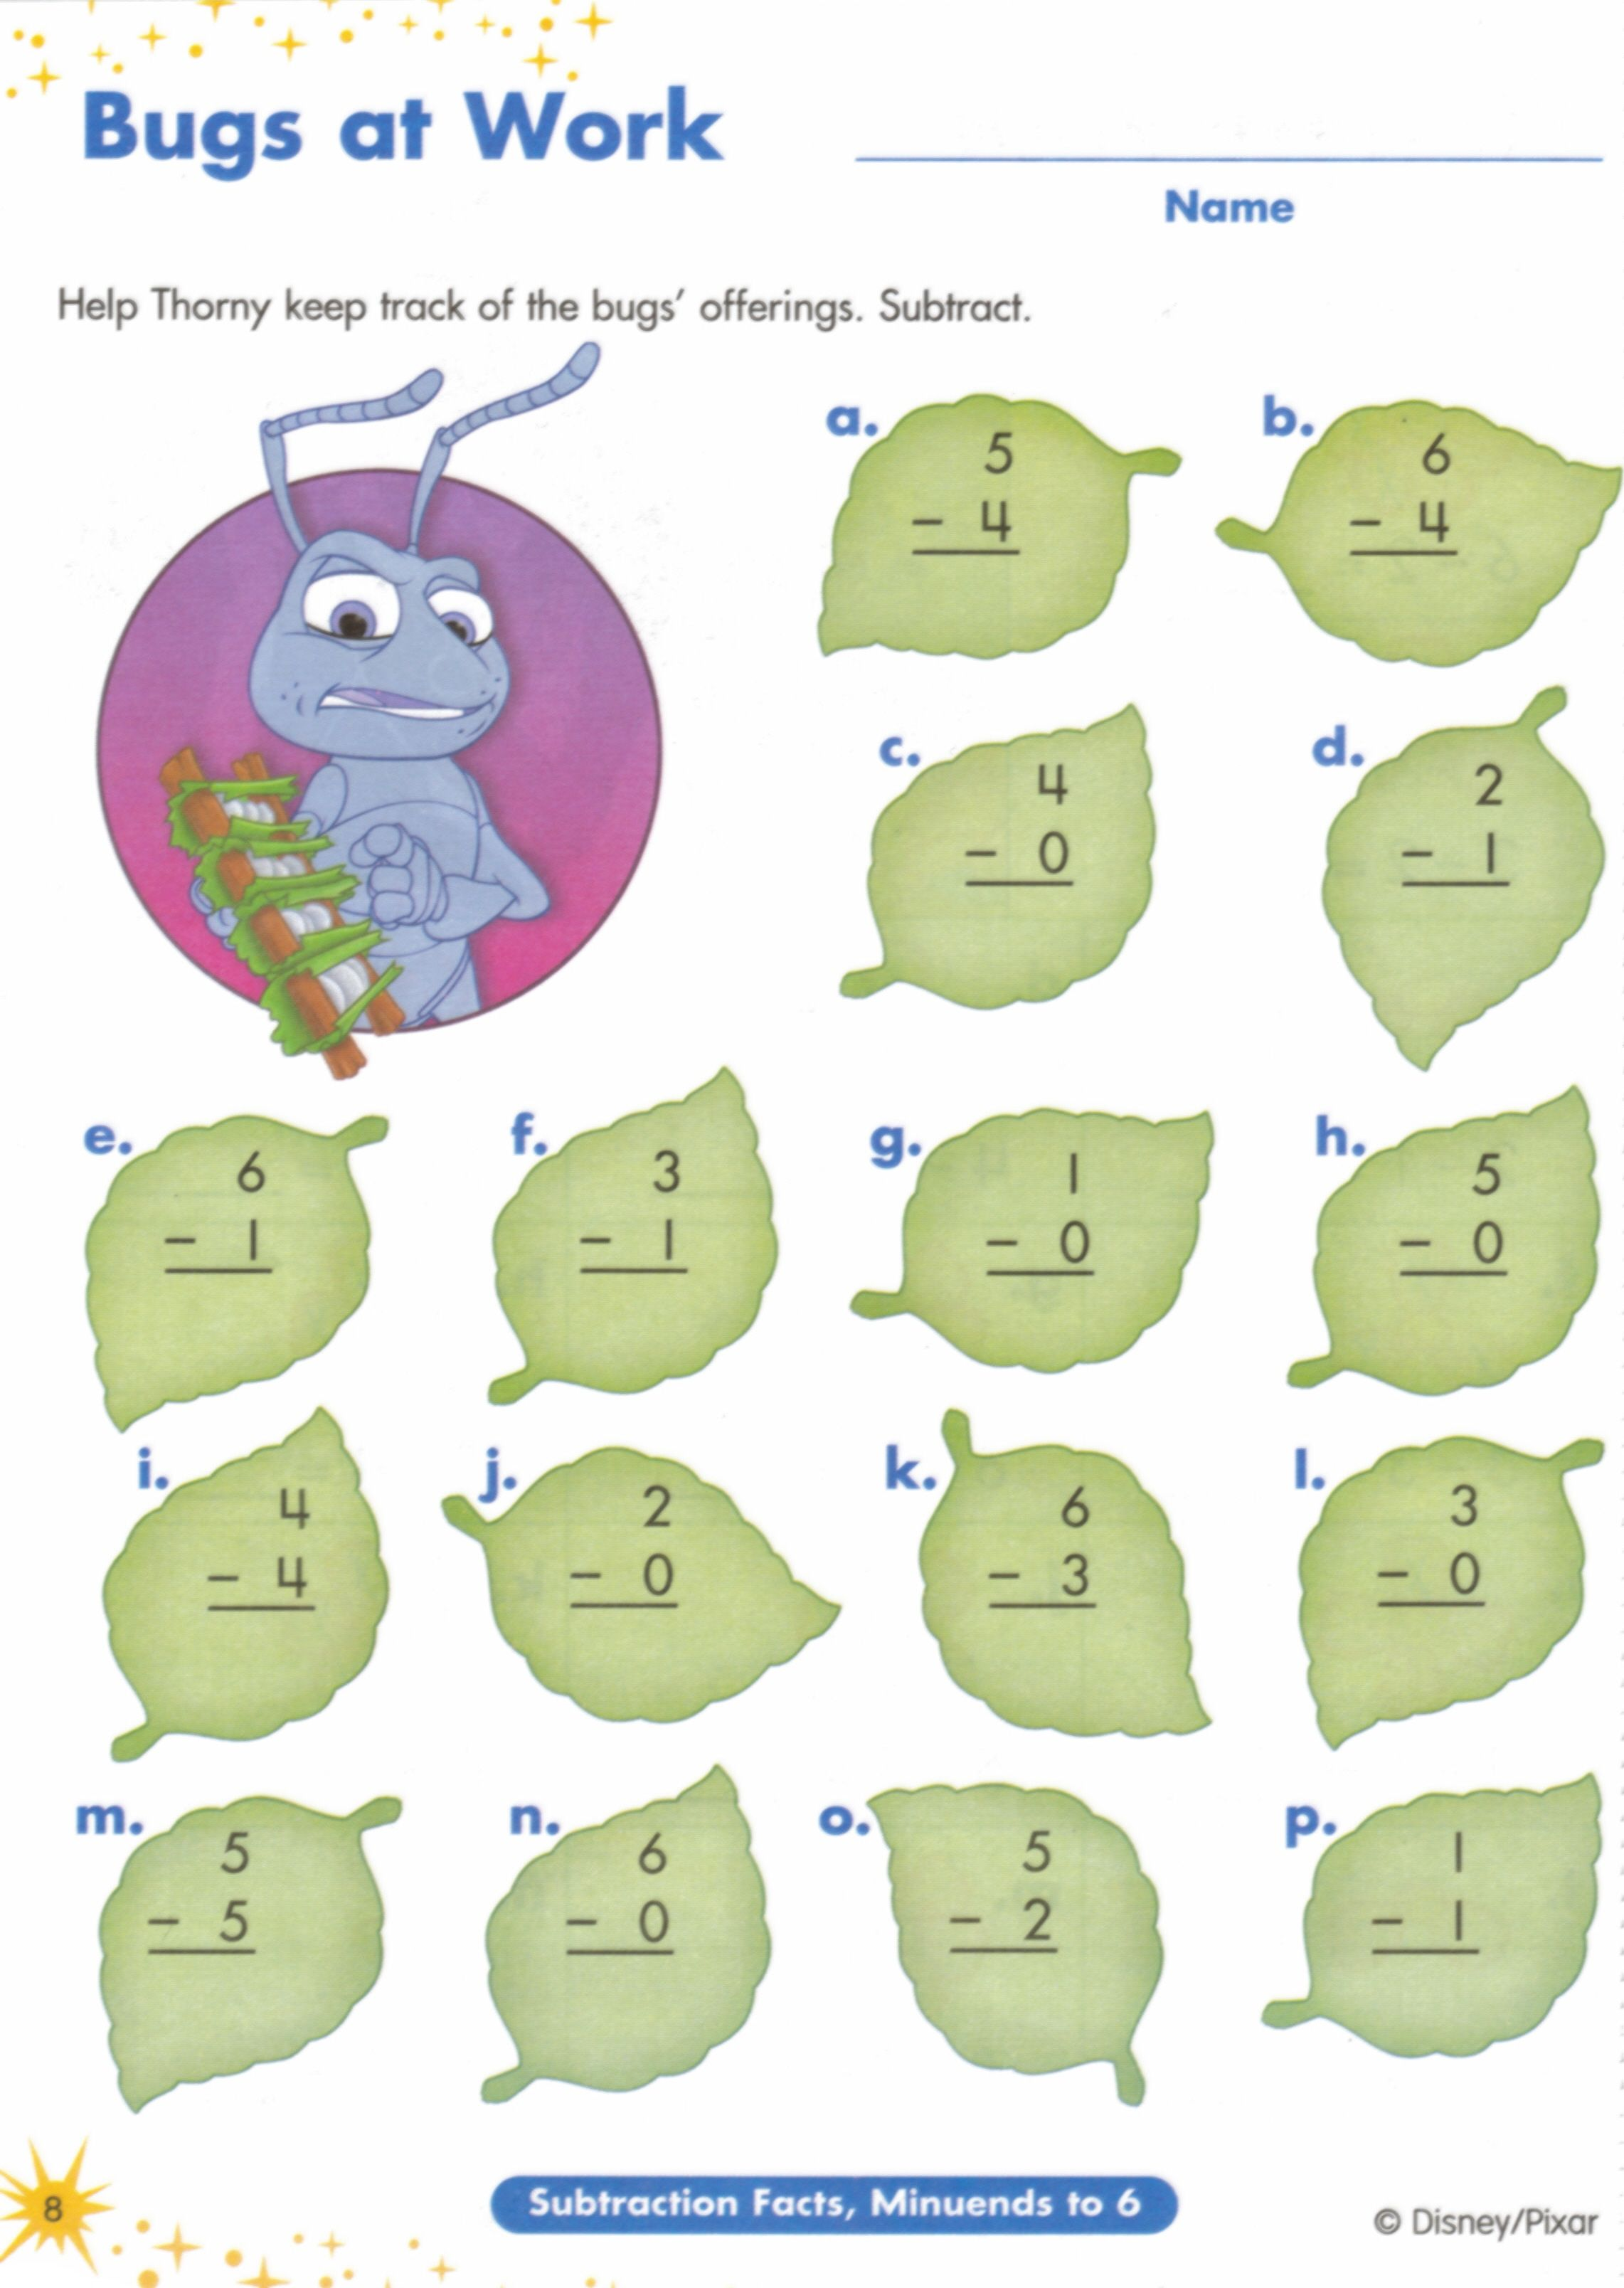 Proatmealus  Scenic  Images About Worksheets On Pinterest  Fun Facts For Kids  With Engaging  Images About Worksheets On Pinterest  Fun Facts For Kids Earth Day Worksheets And Jungles With Delightful Math Worksheets For Fifth Grade Also Free Spring Worksheets In Addition Kindergarten Matching Worksheets And Touch Math Multiplication Worksheets As Well As Acids And Bases Worksheets Additionally Parts Of Speech Worksheet High School From Pinterestcom With Proatmealus  Engaging  Images About Worksheets On Pinterest  Fun Facts For Kids  With Delightful  Images About Worksheets On Pinterest  Fun Facts For Kids Earth Day Worksheets And Jungles And Scenic Math Worksheets For Fifth Grade Also Free Spring Worksheets In Addition Kindergarten Matching Worksheets From Pinterestcom